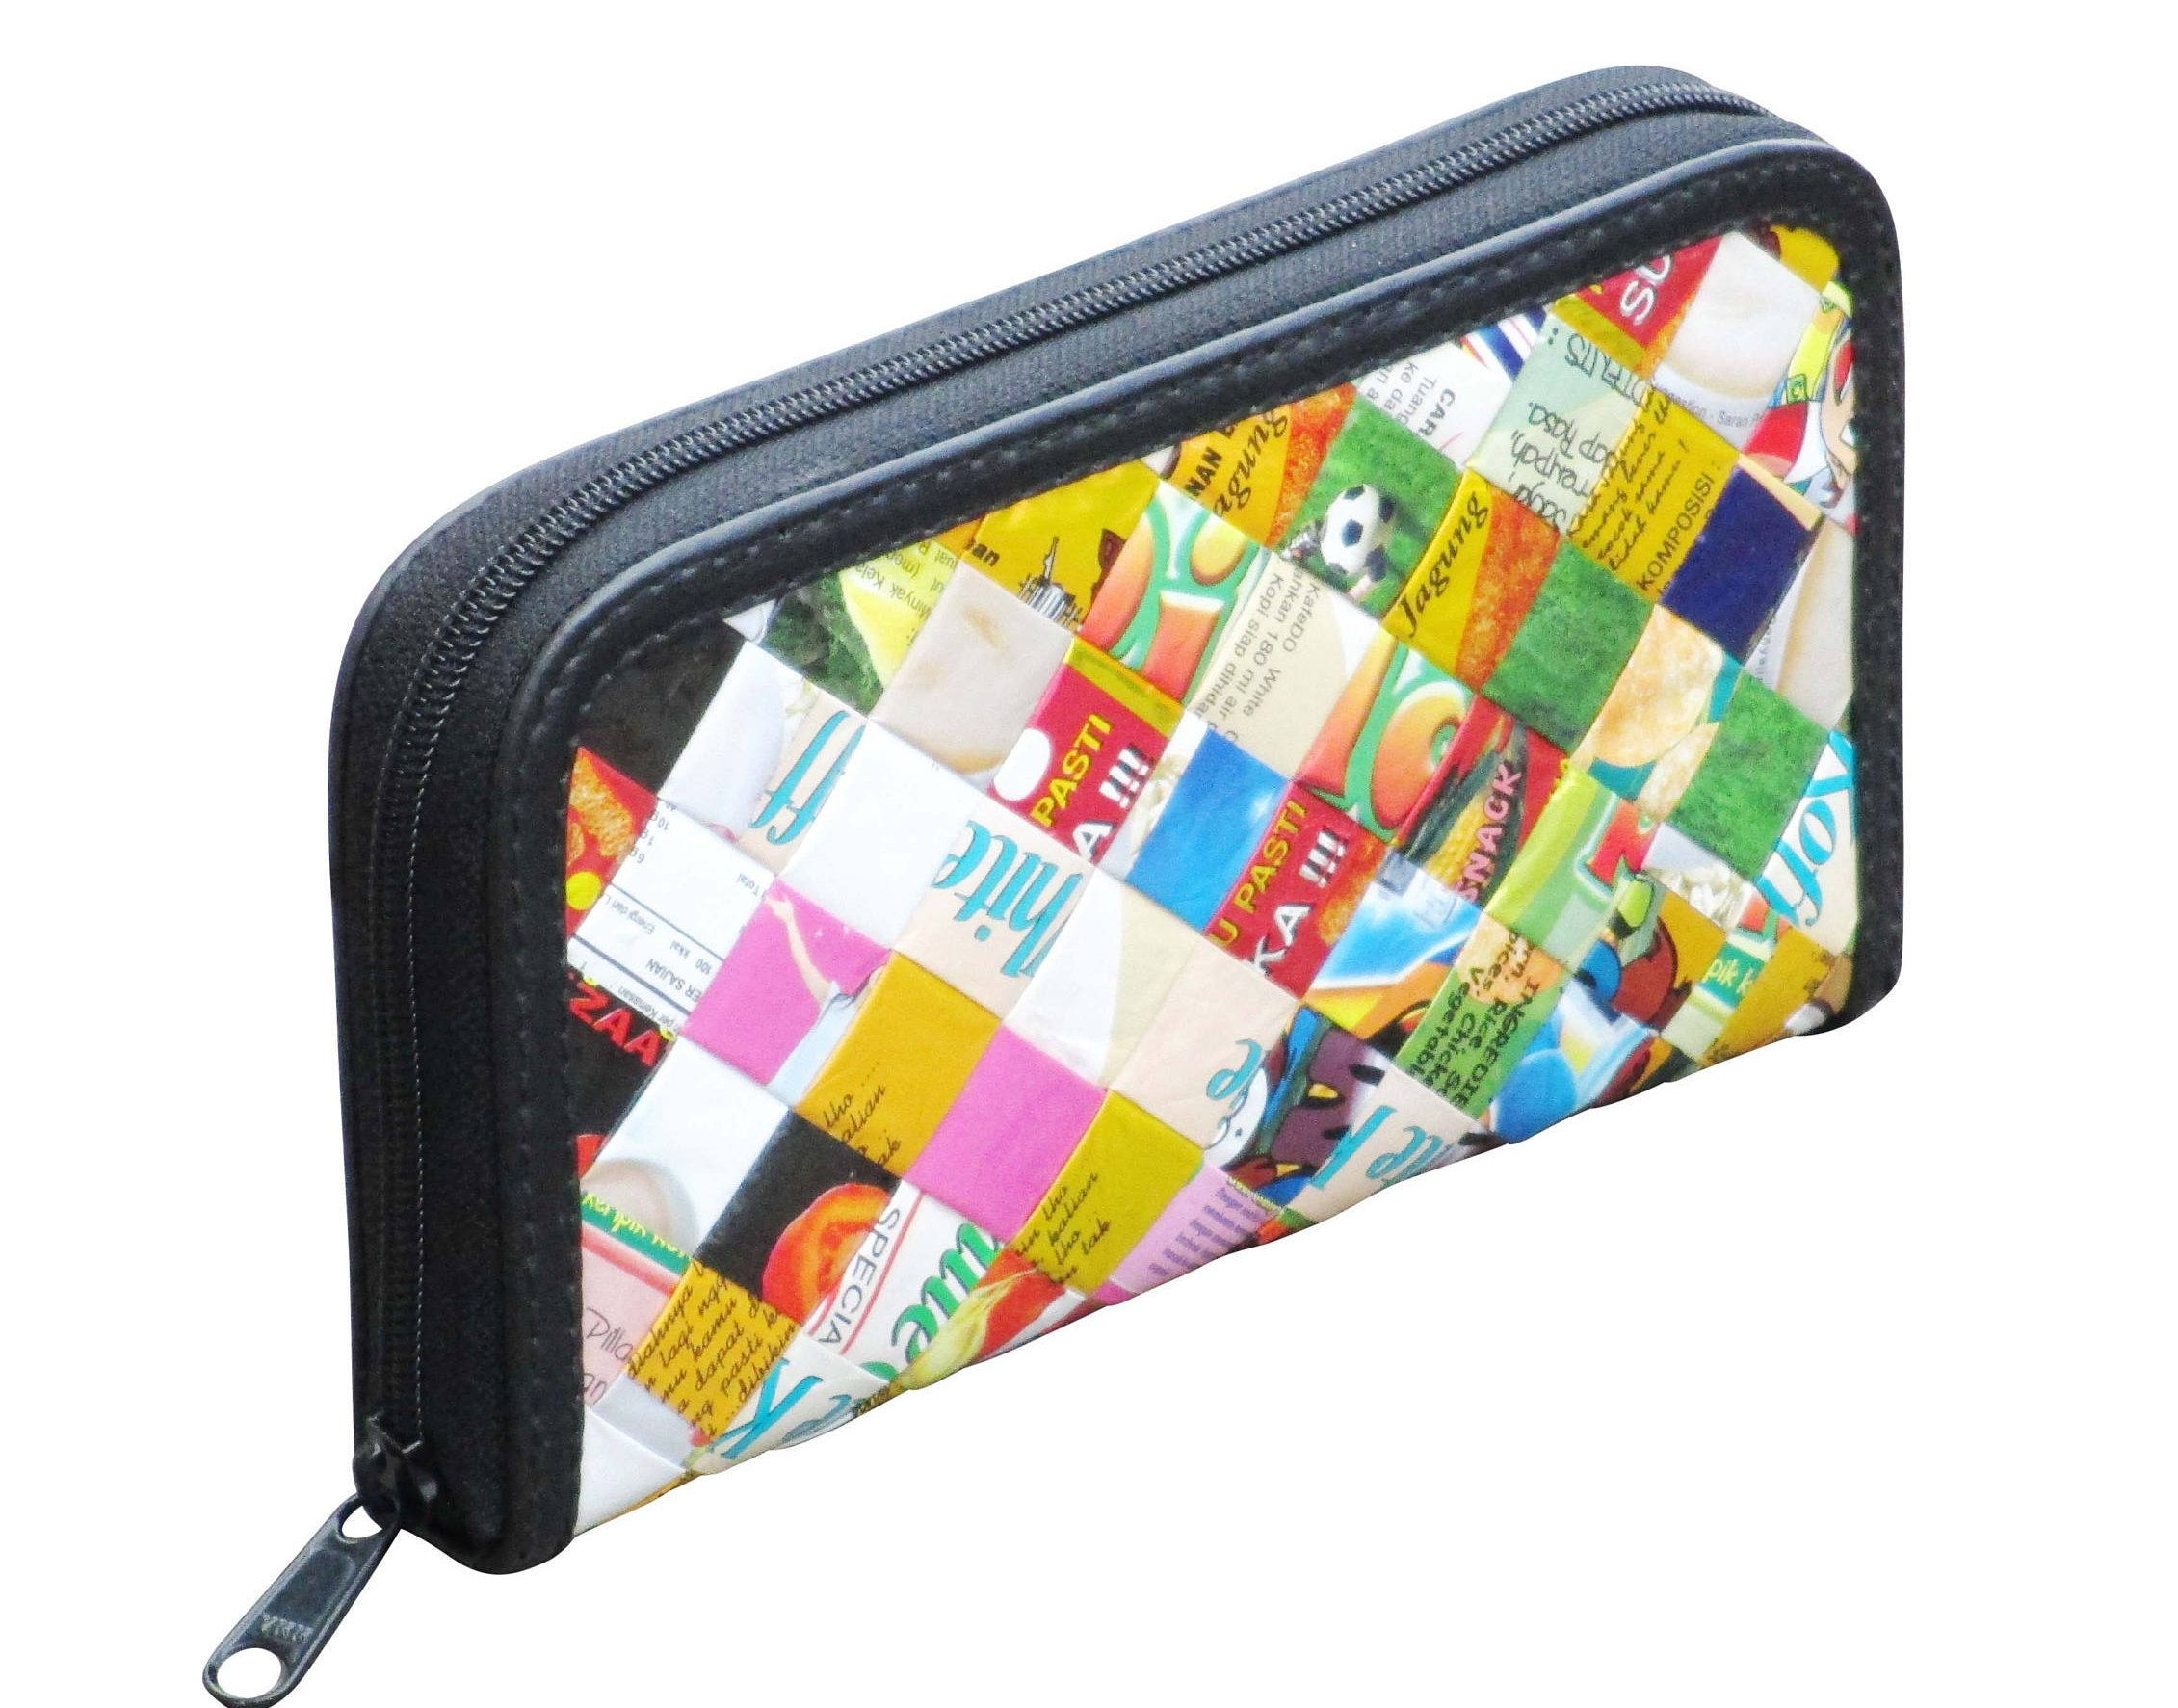 Medium zip wallet made from candy wrappers - FREE SHIPPING